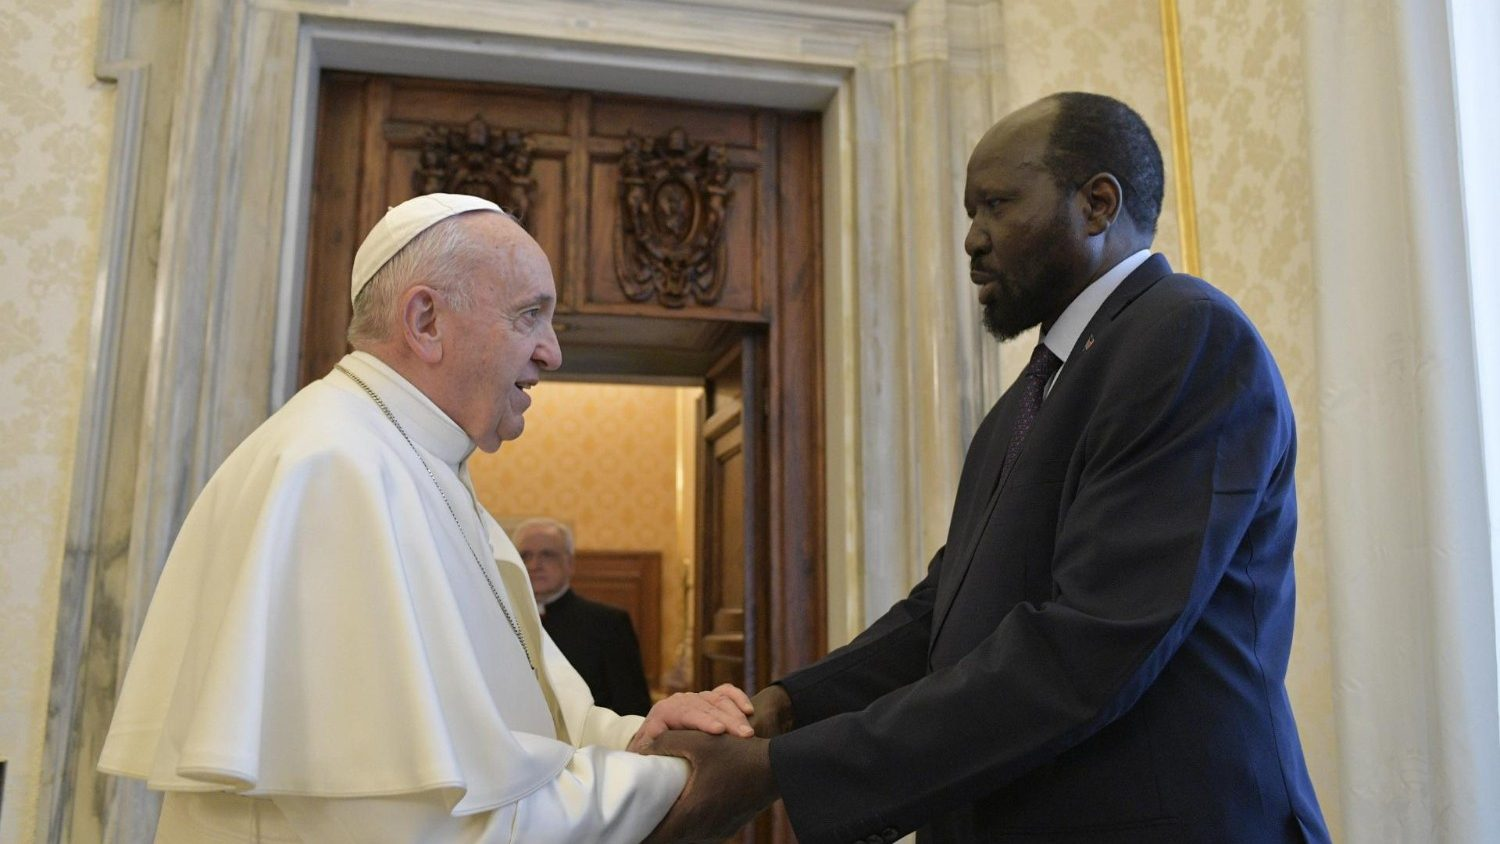 Pope Francis meets South Sudan's President Salva Kiir